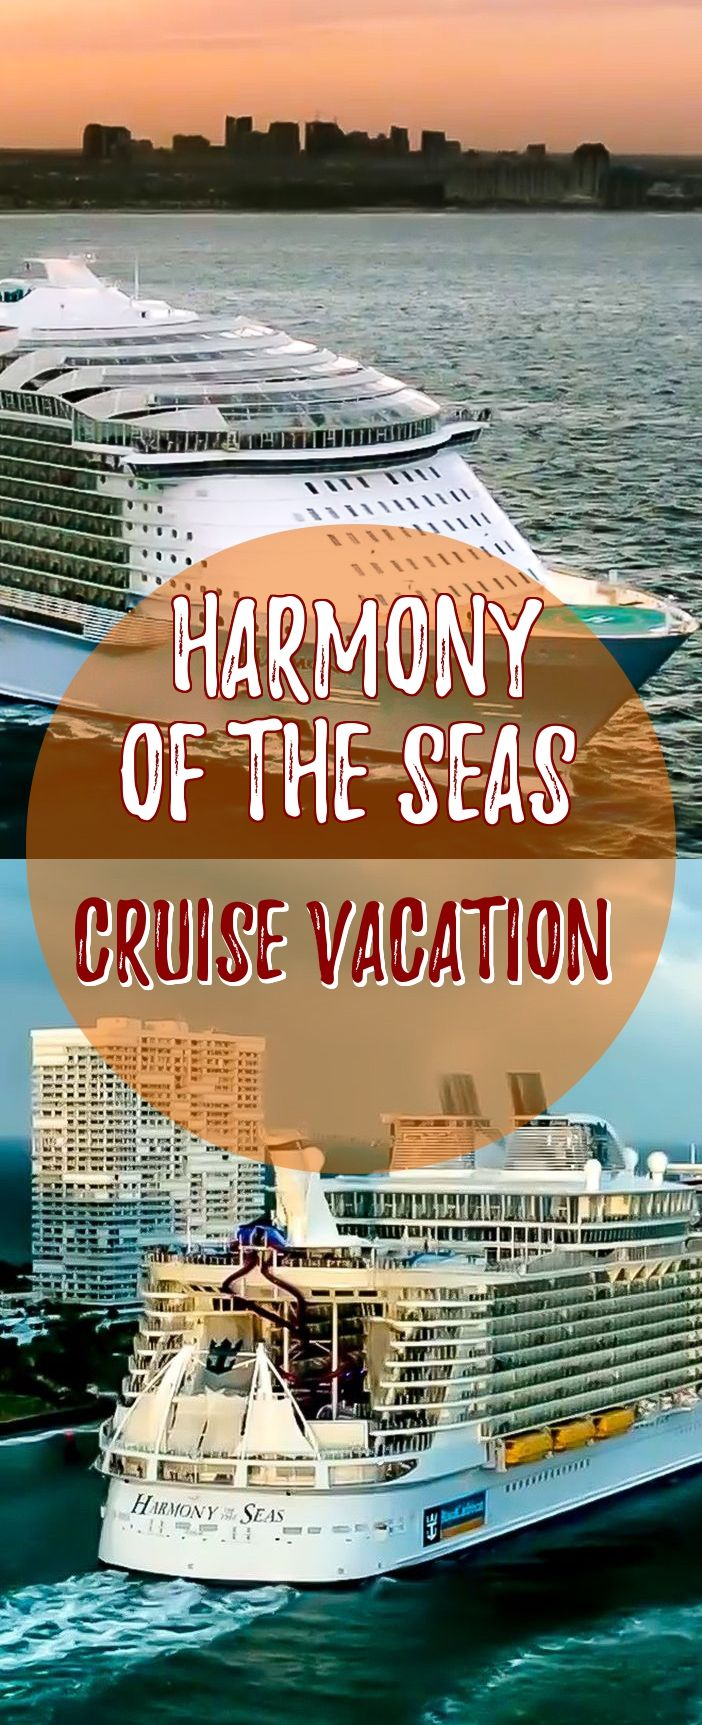 Compare Prices For Harmony Of The Seas Cruises Cruise Prices - Compare cruise prices